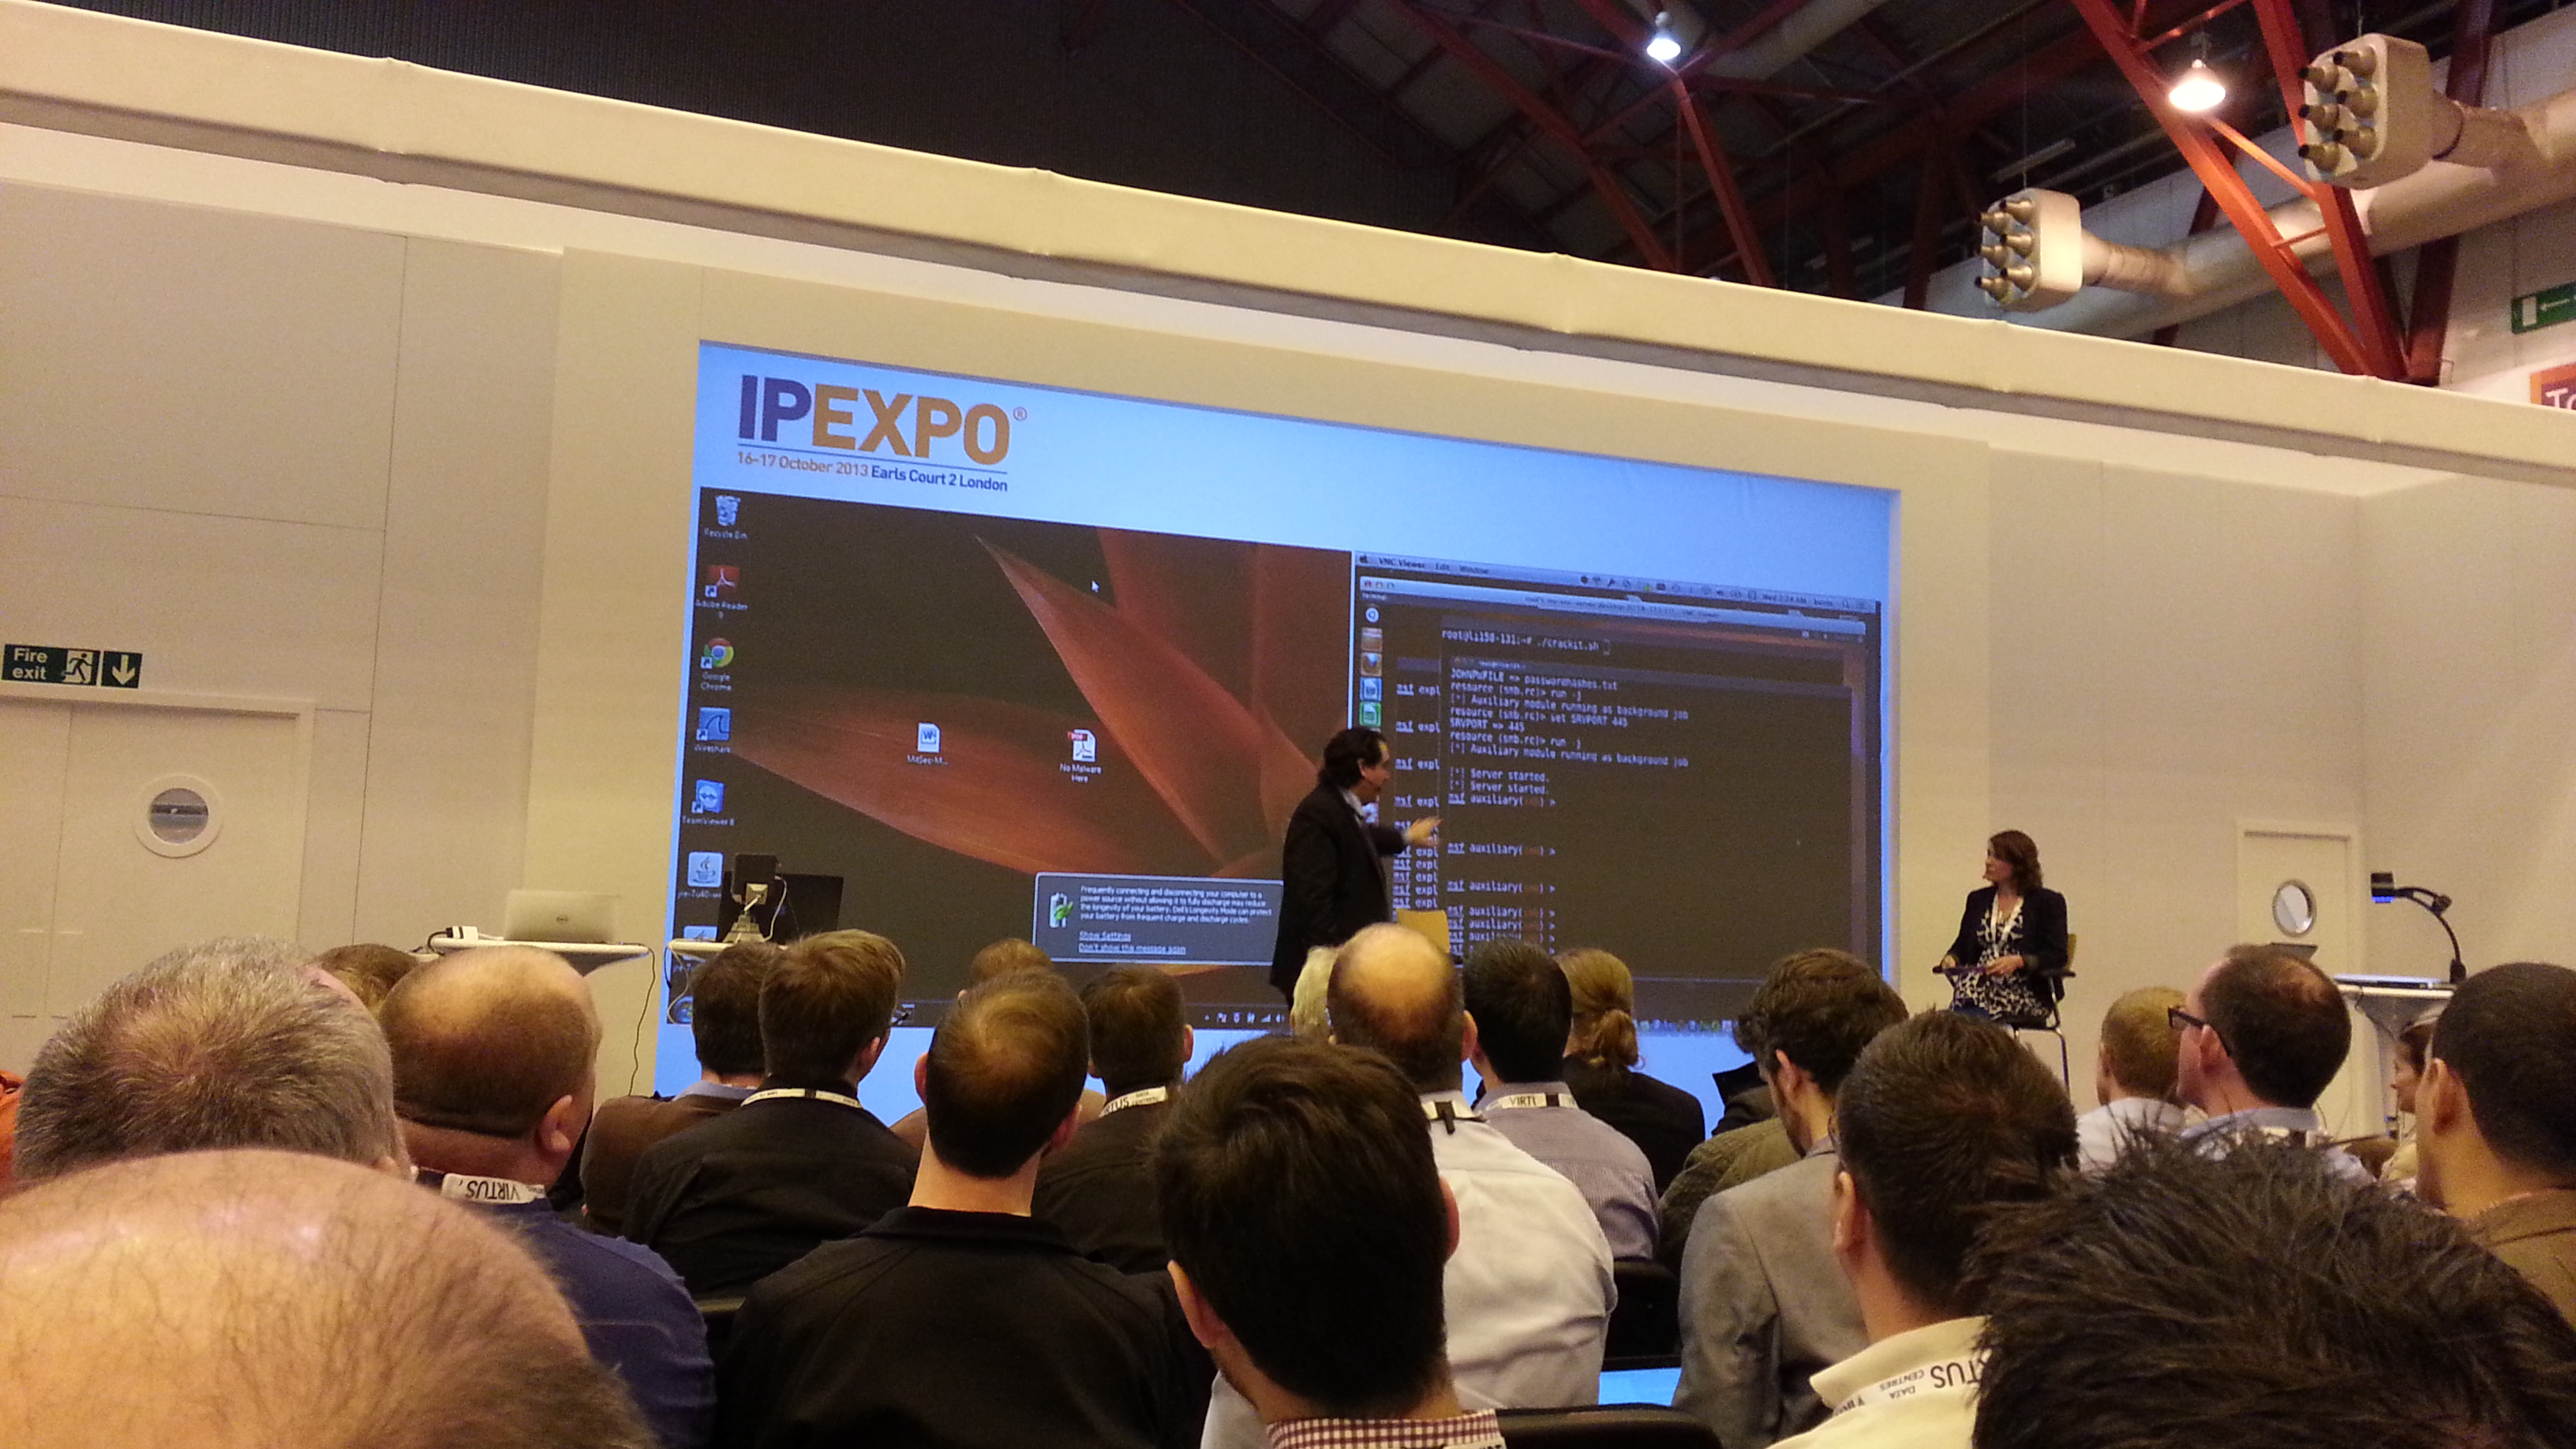 IP EXPO 2013 London kevin mitnick keynote